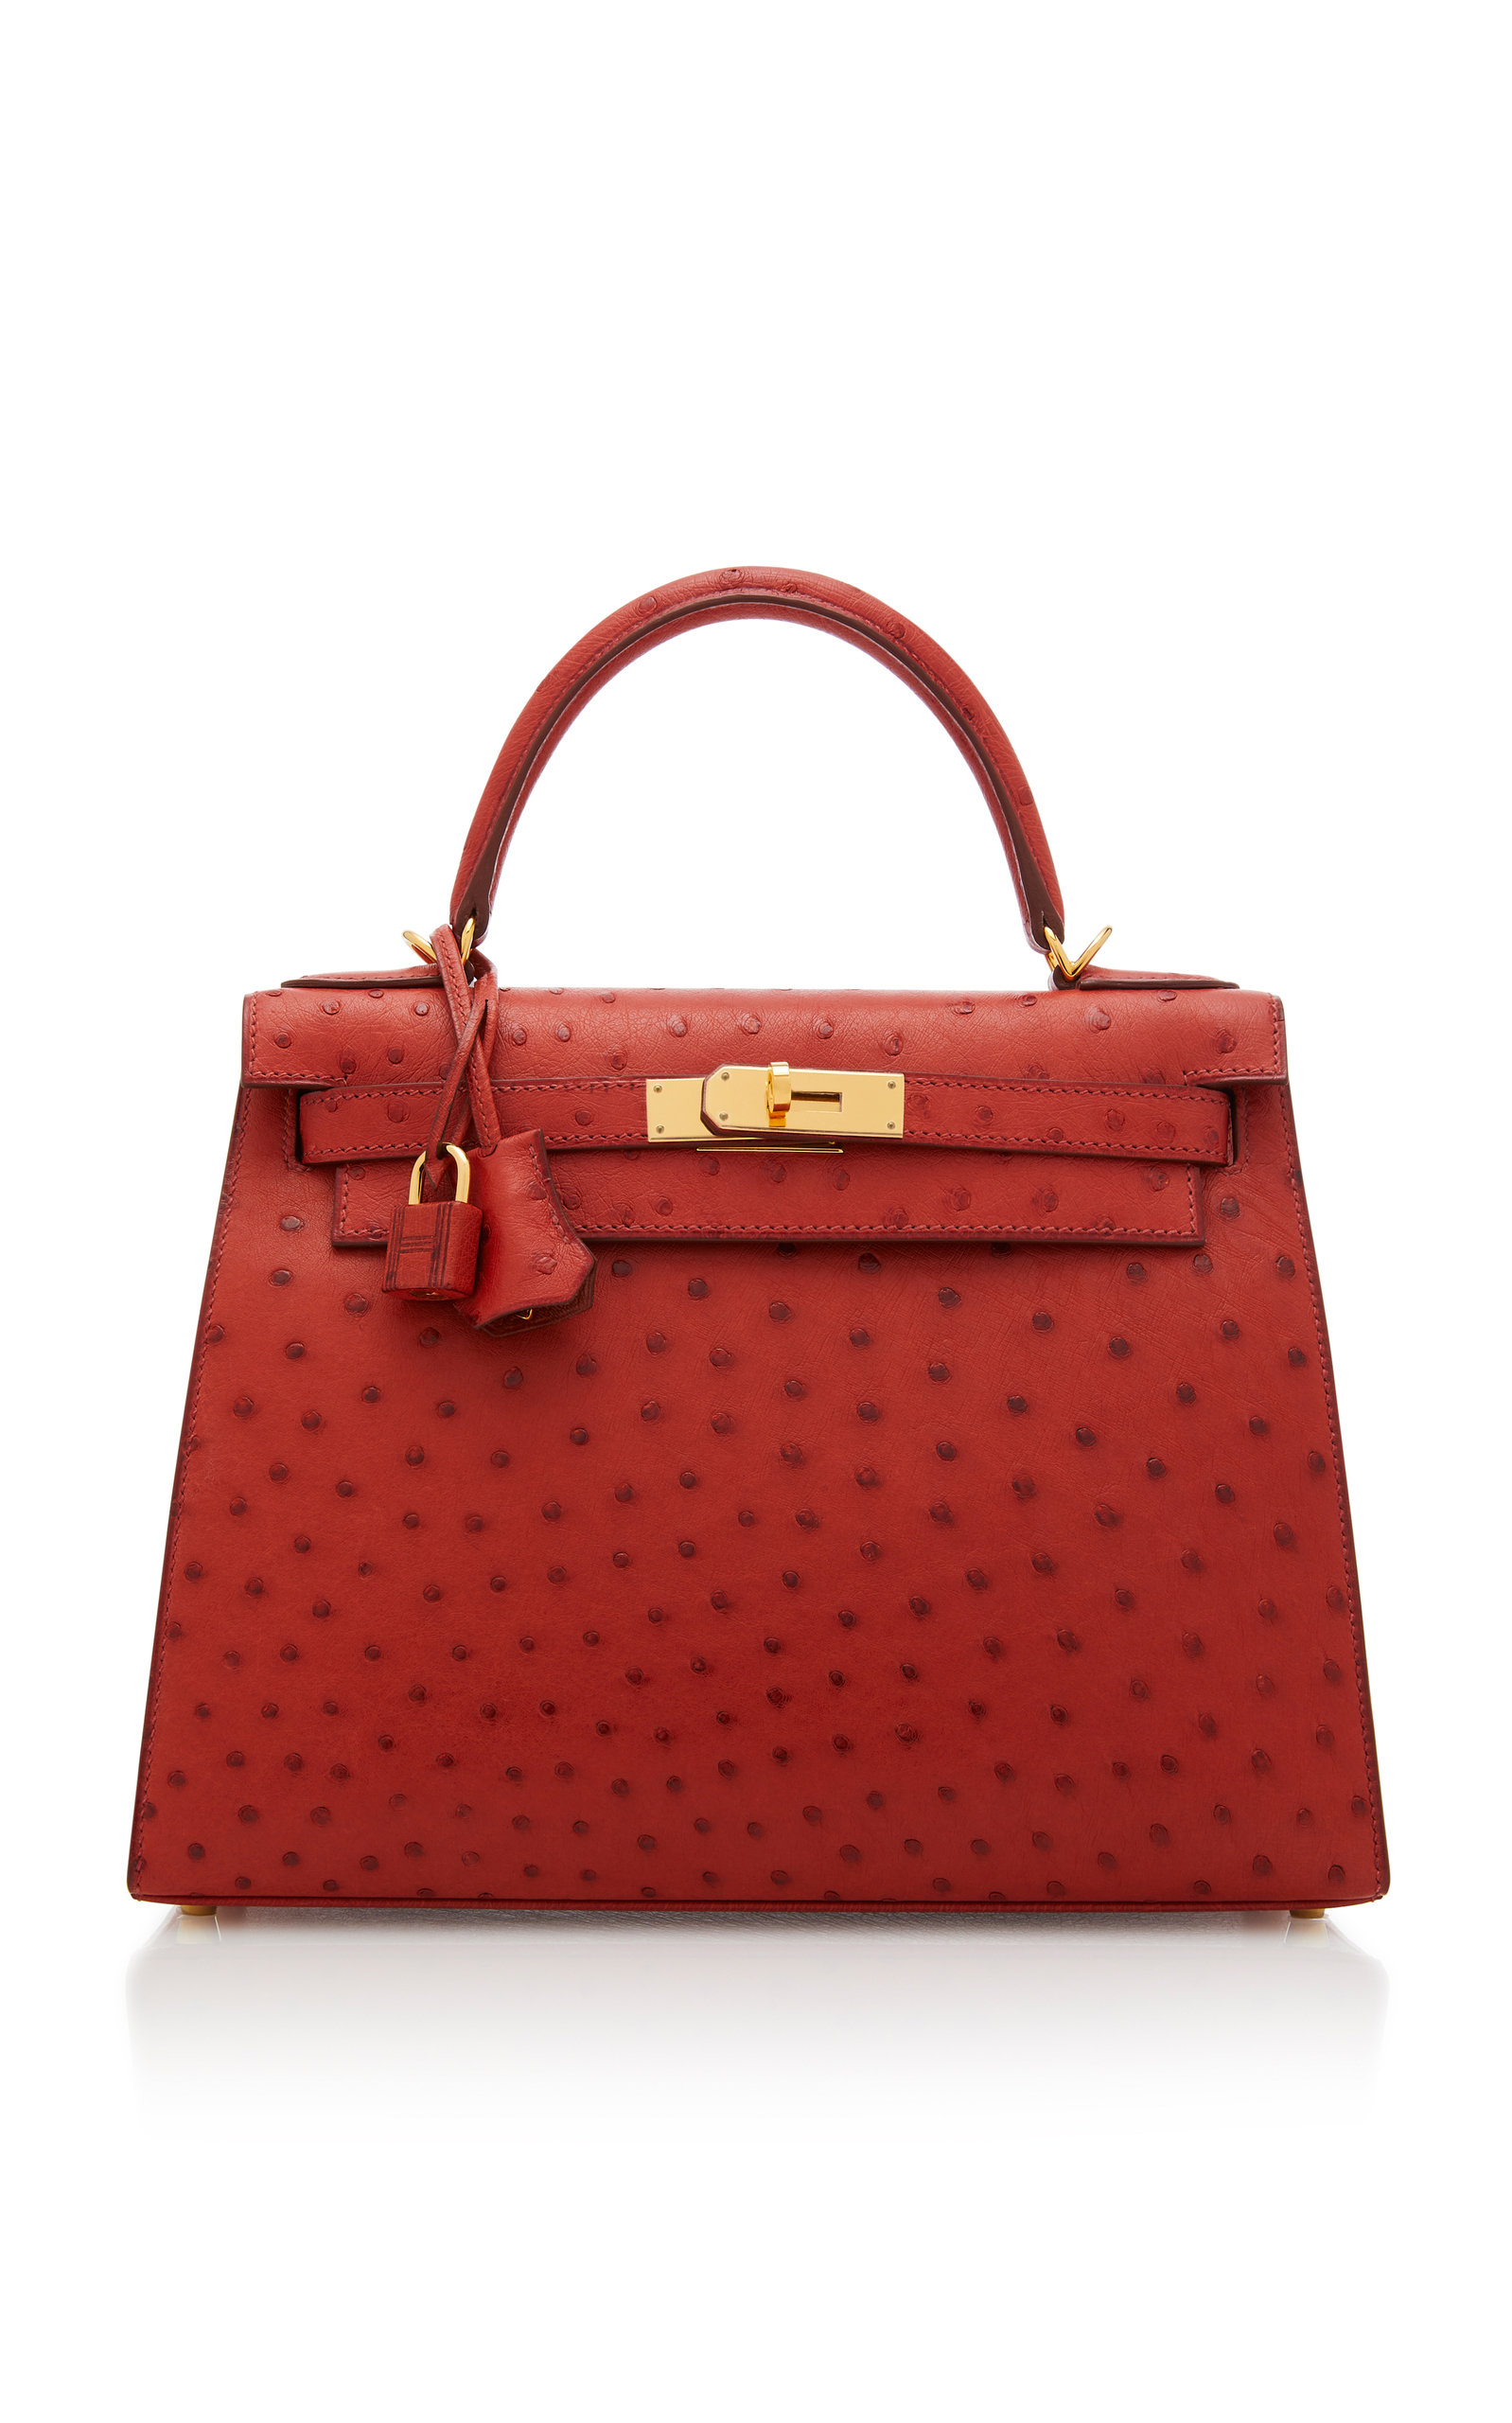 b5aa7a8dab83 Hermes 28cm Brique Ostrich Sellier Kelly by Hermès Vintage by ...